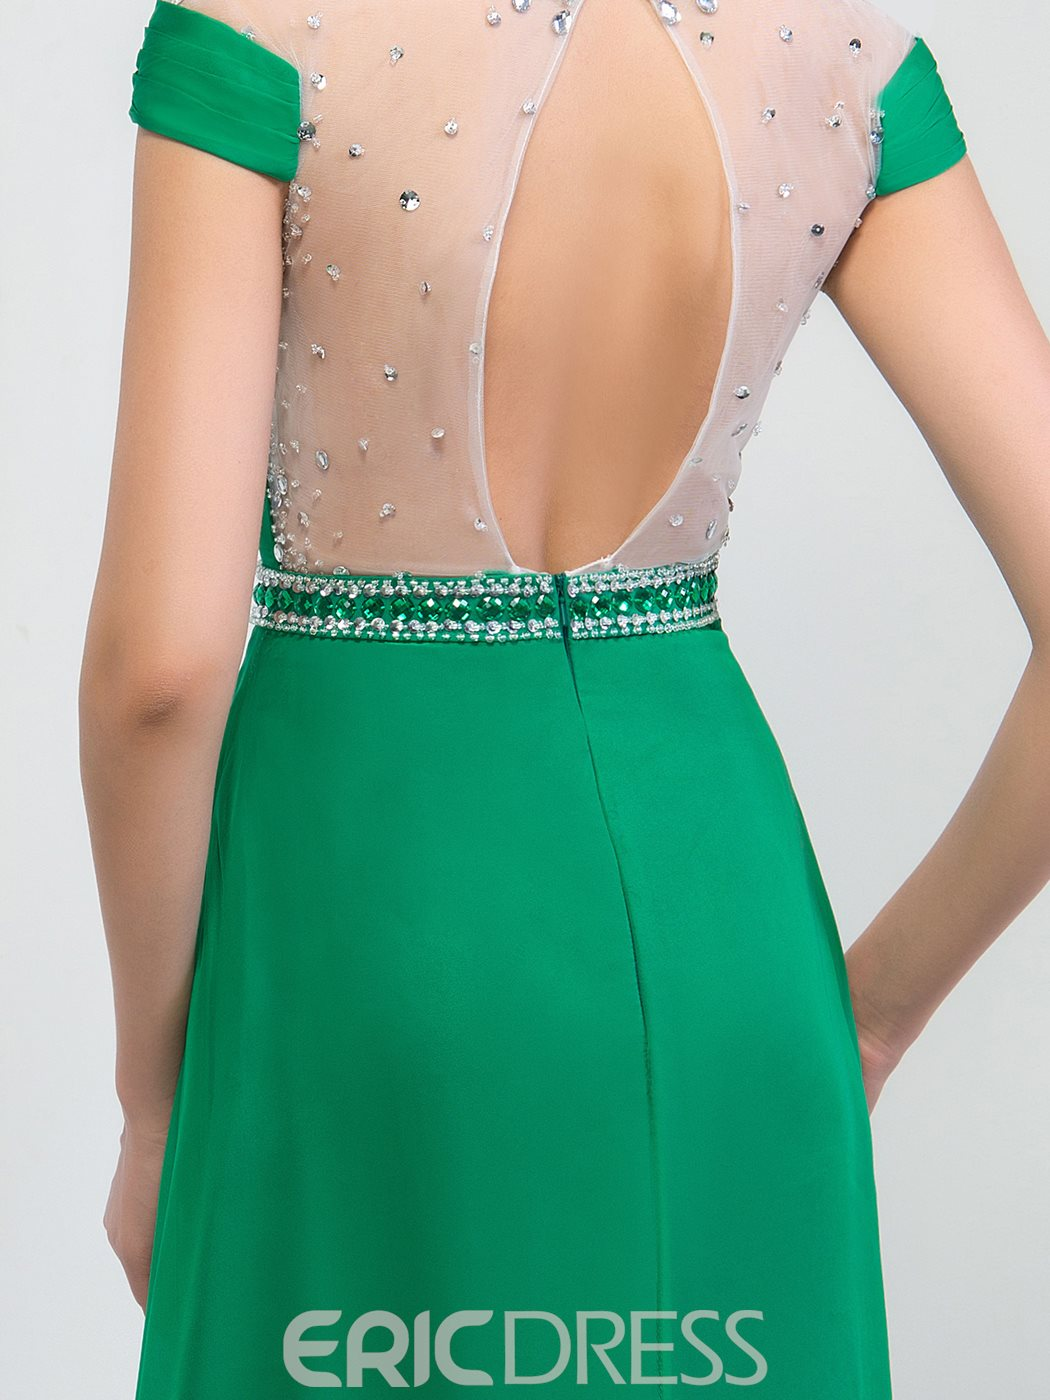 Ericdress Jewel Sequins Beaded Open Back Prom Dresss